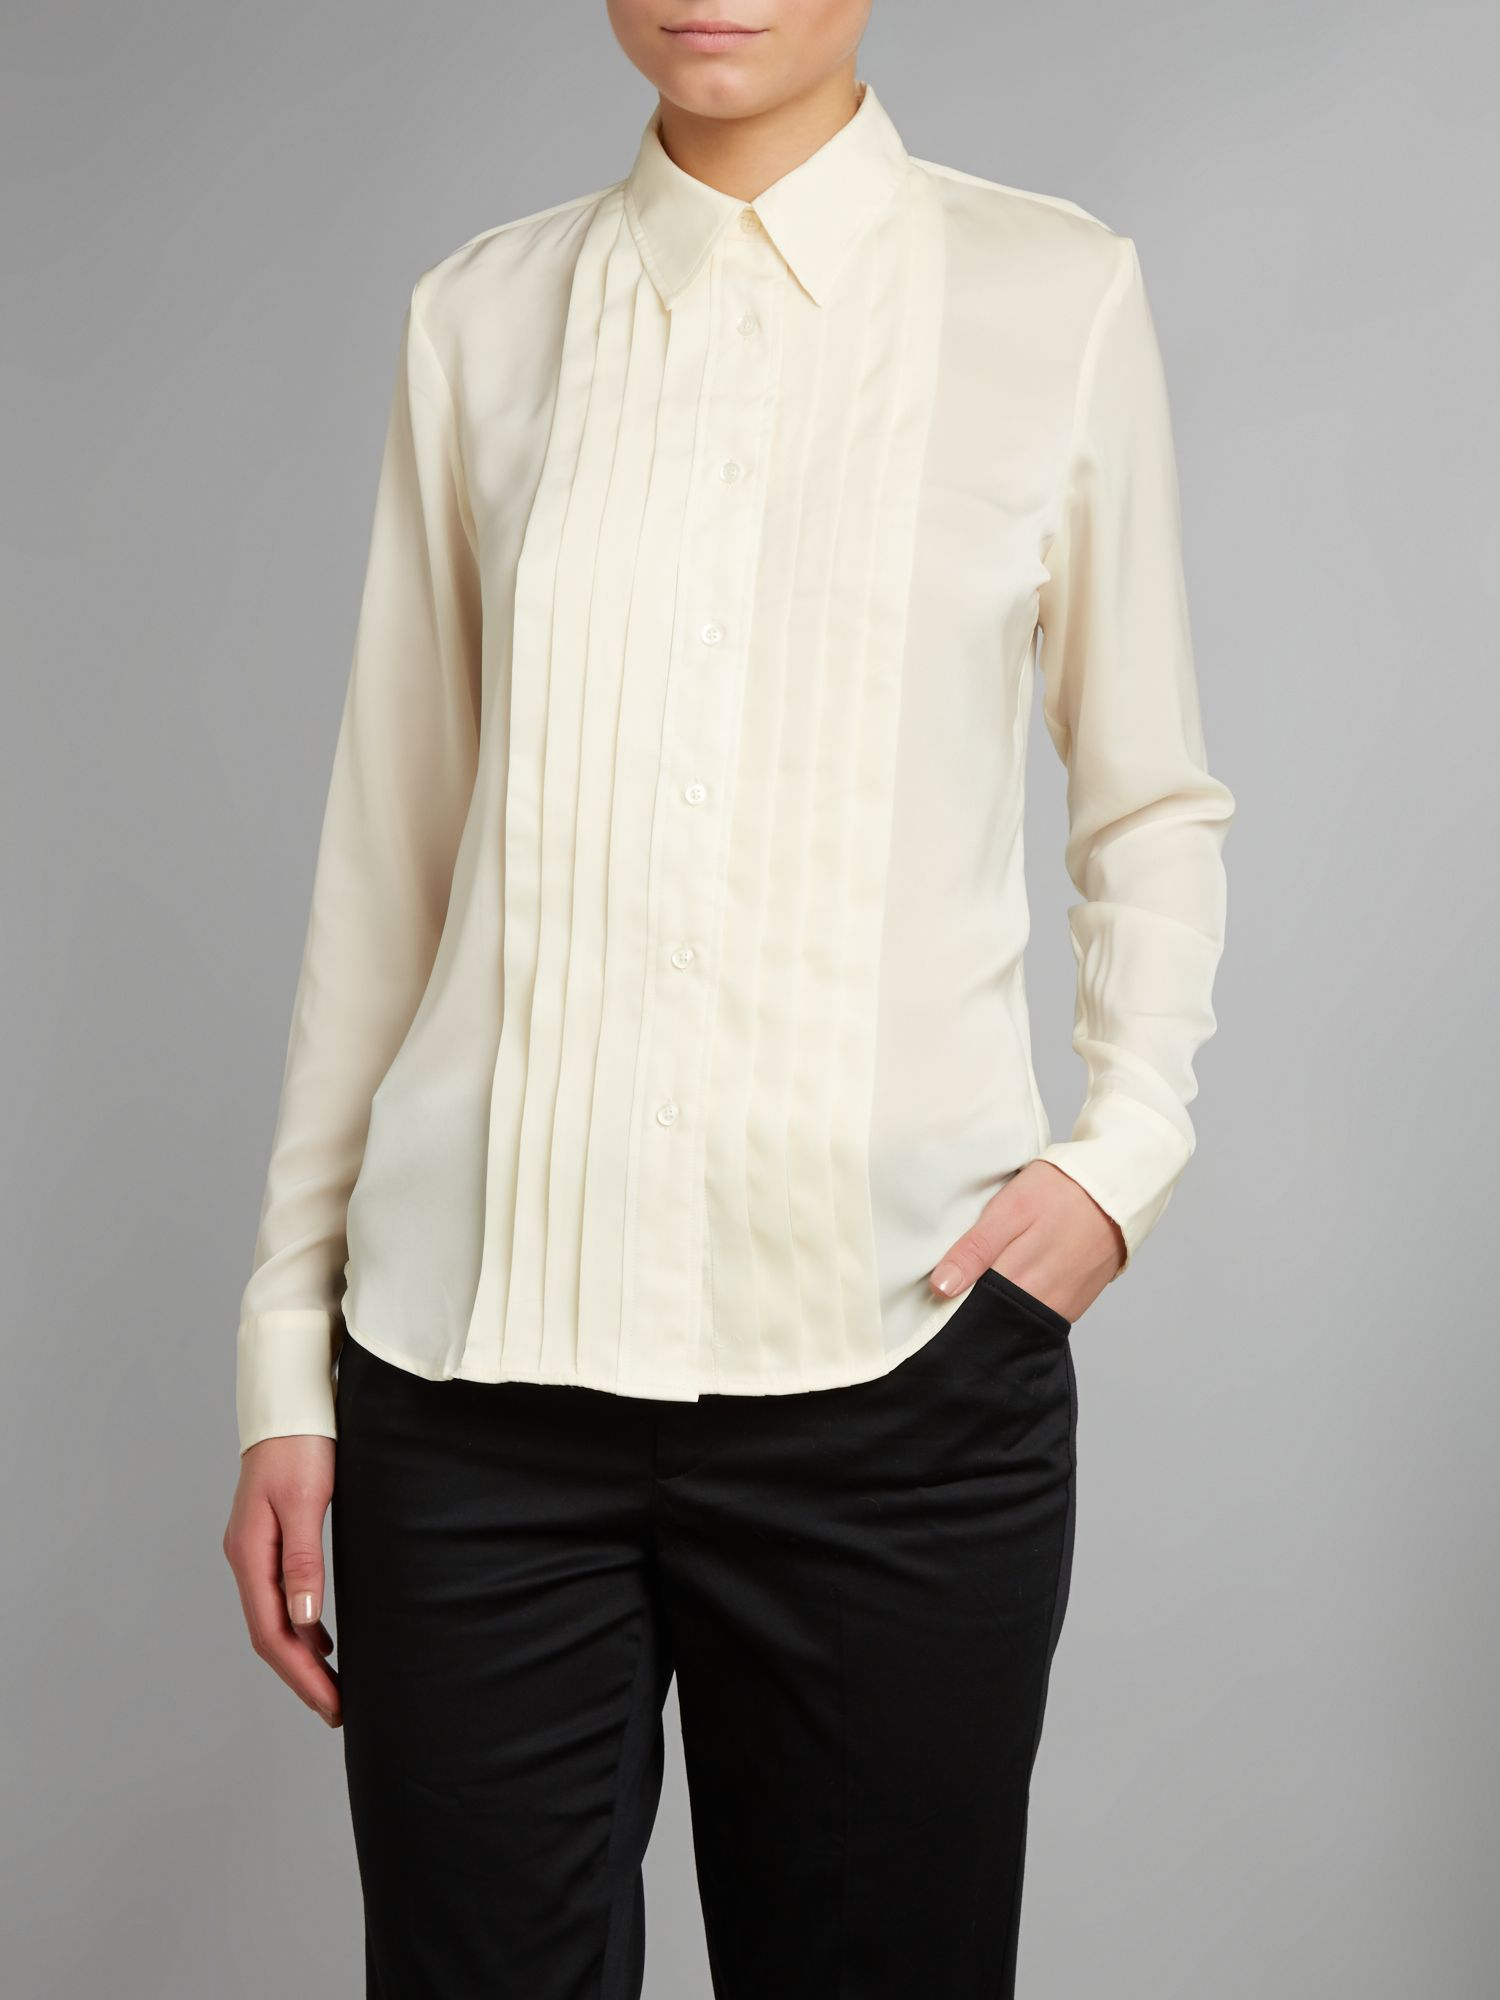 Long sleeved tuxedo shirt